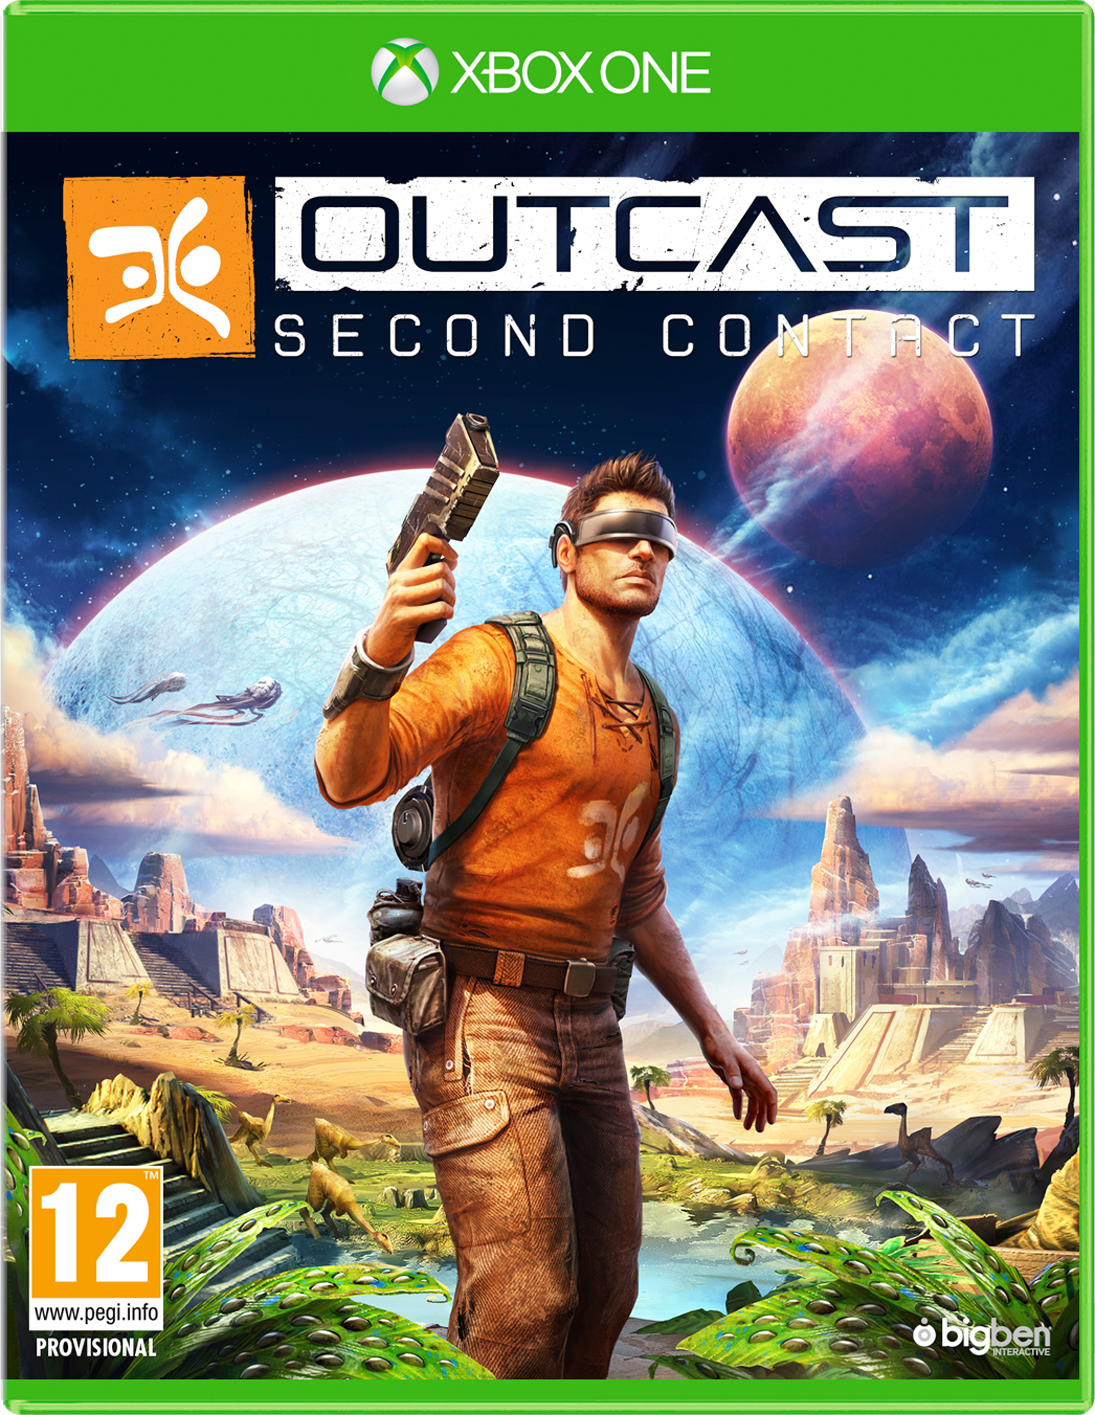 OUTCAST - Second Contact, Xbox one